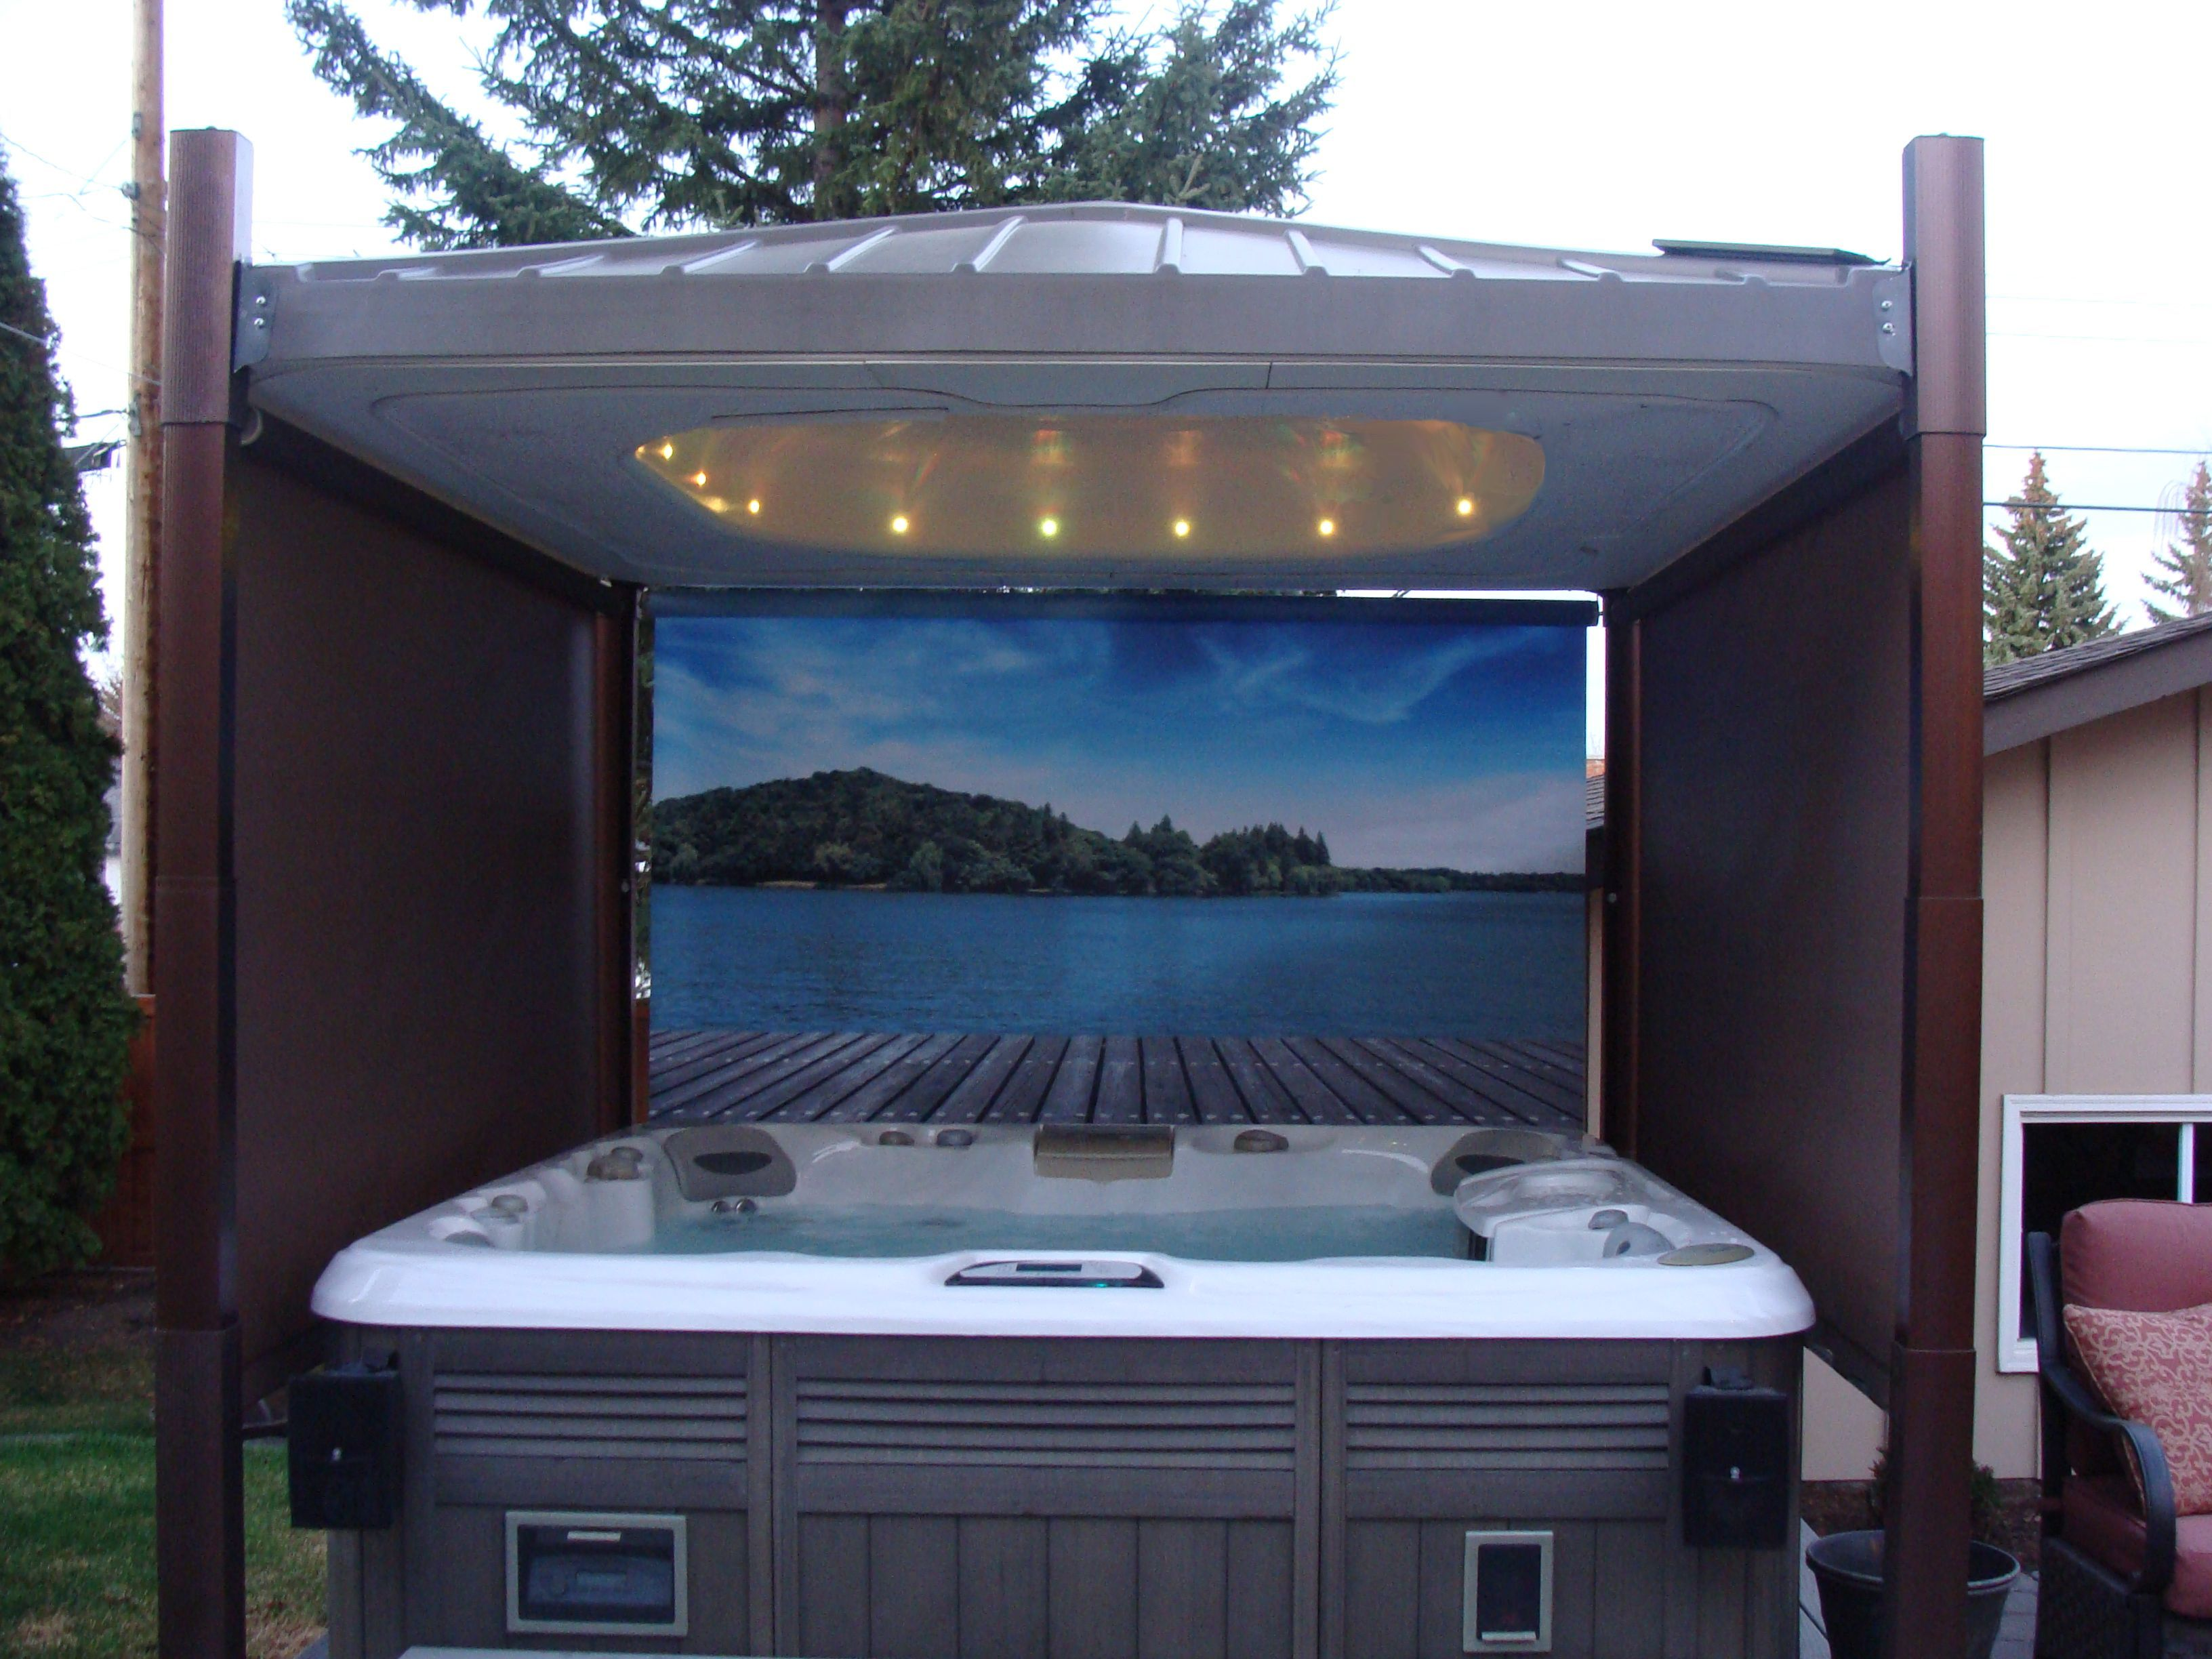 Lovely Pictures Of Hot Tub Enclosures for Winter - Best Home Design ...